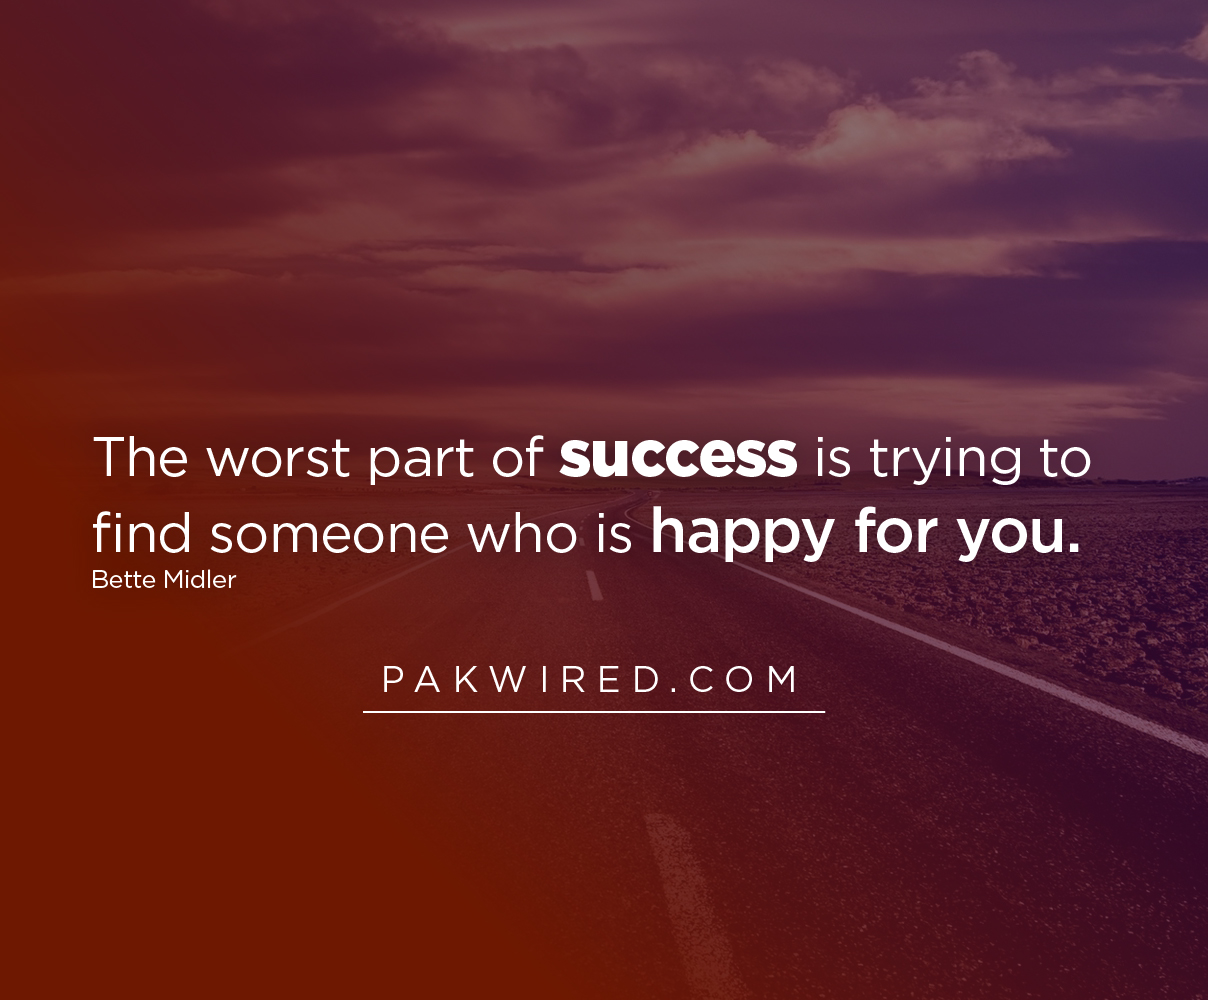 The worst part of success is trying to find someone who is happy for you-01